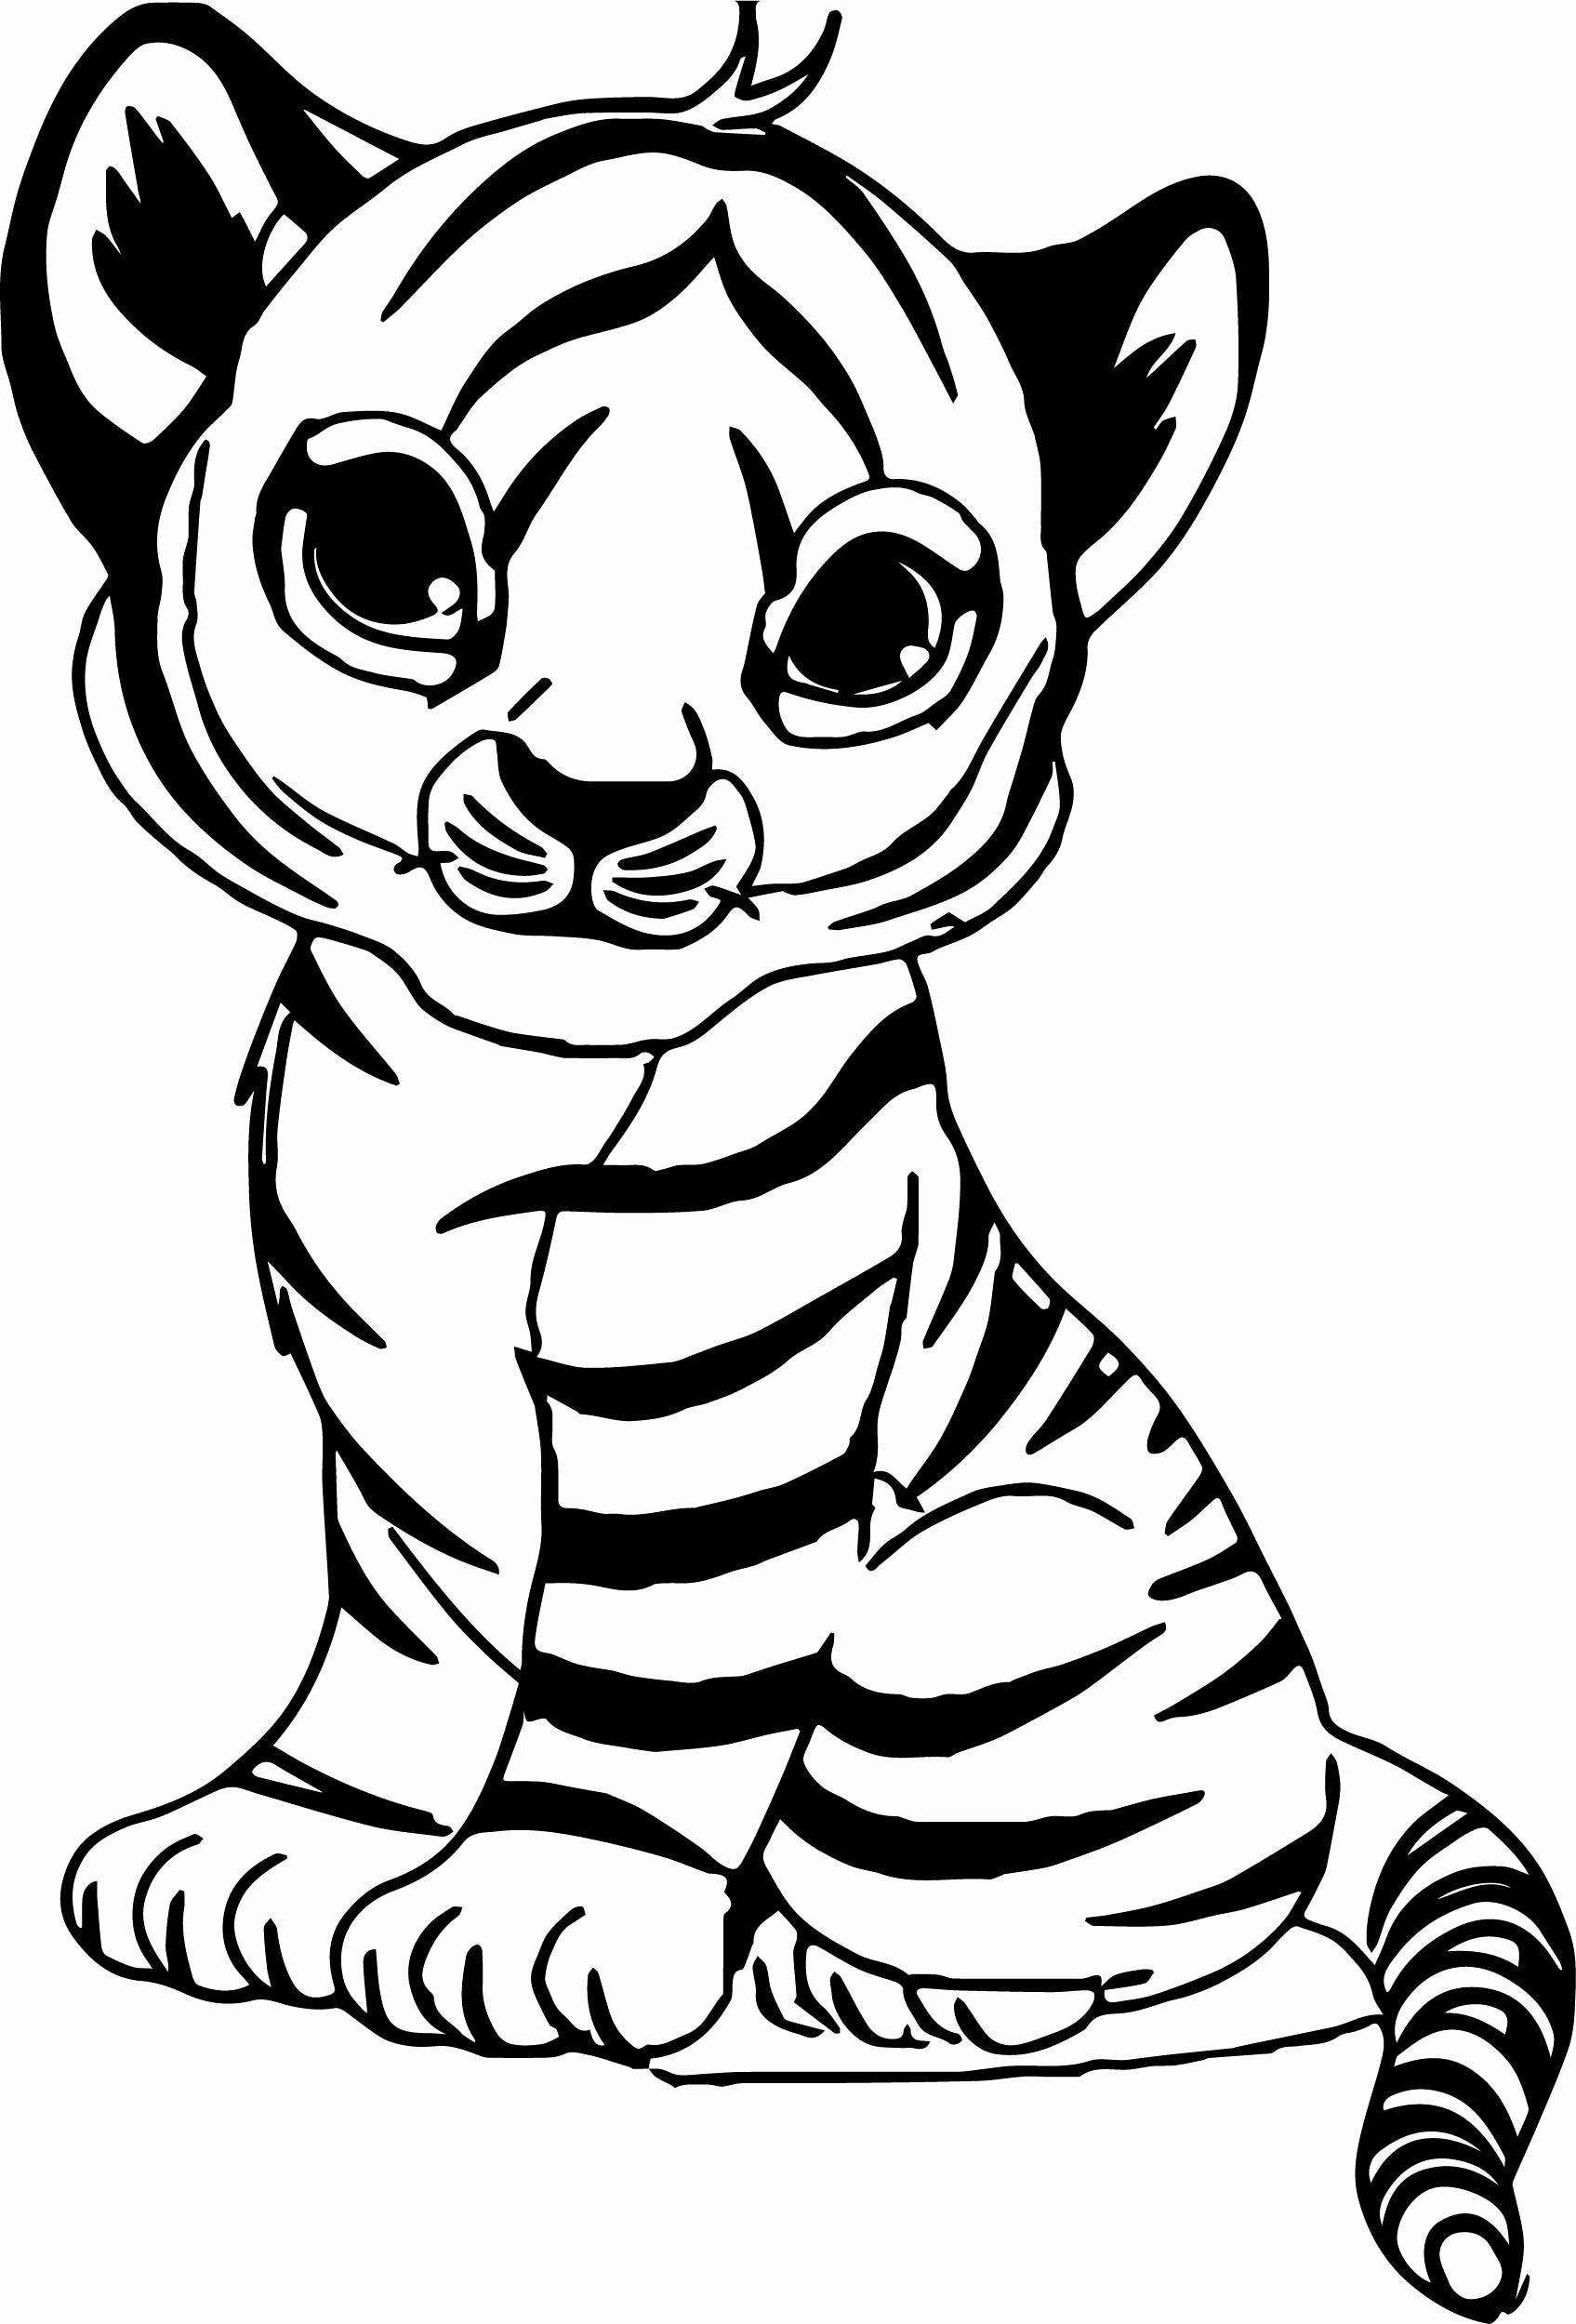 Coloring Pages Of Animal Tiger Kids In 2020 Zoo Animal Coloring Pages Animal Coloring Pages Zoo Coloring Pages